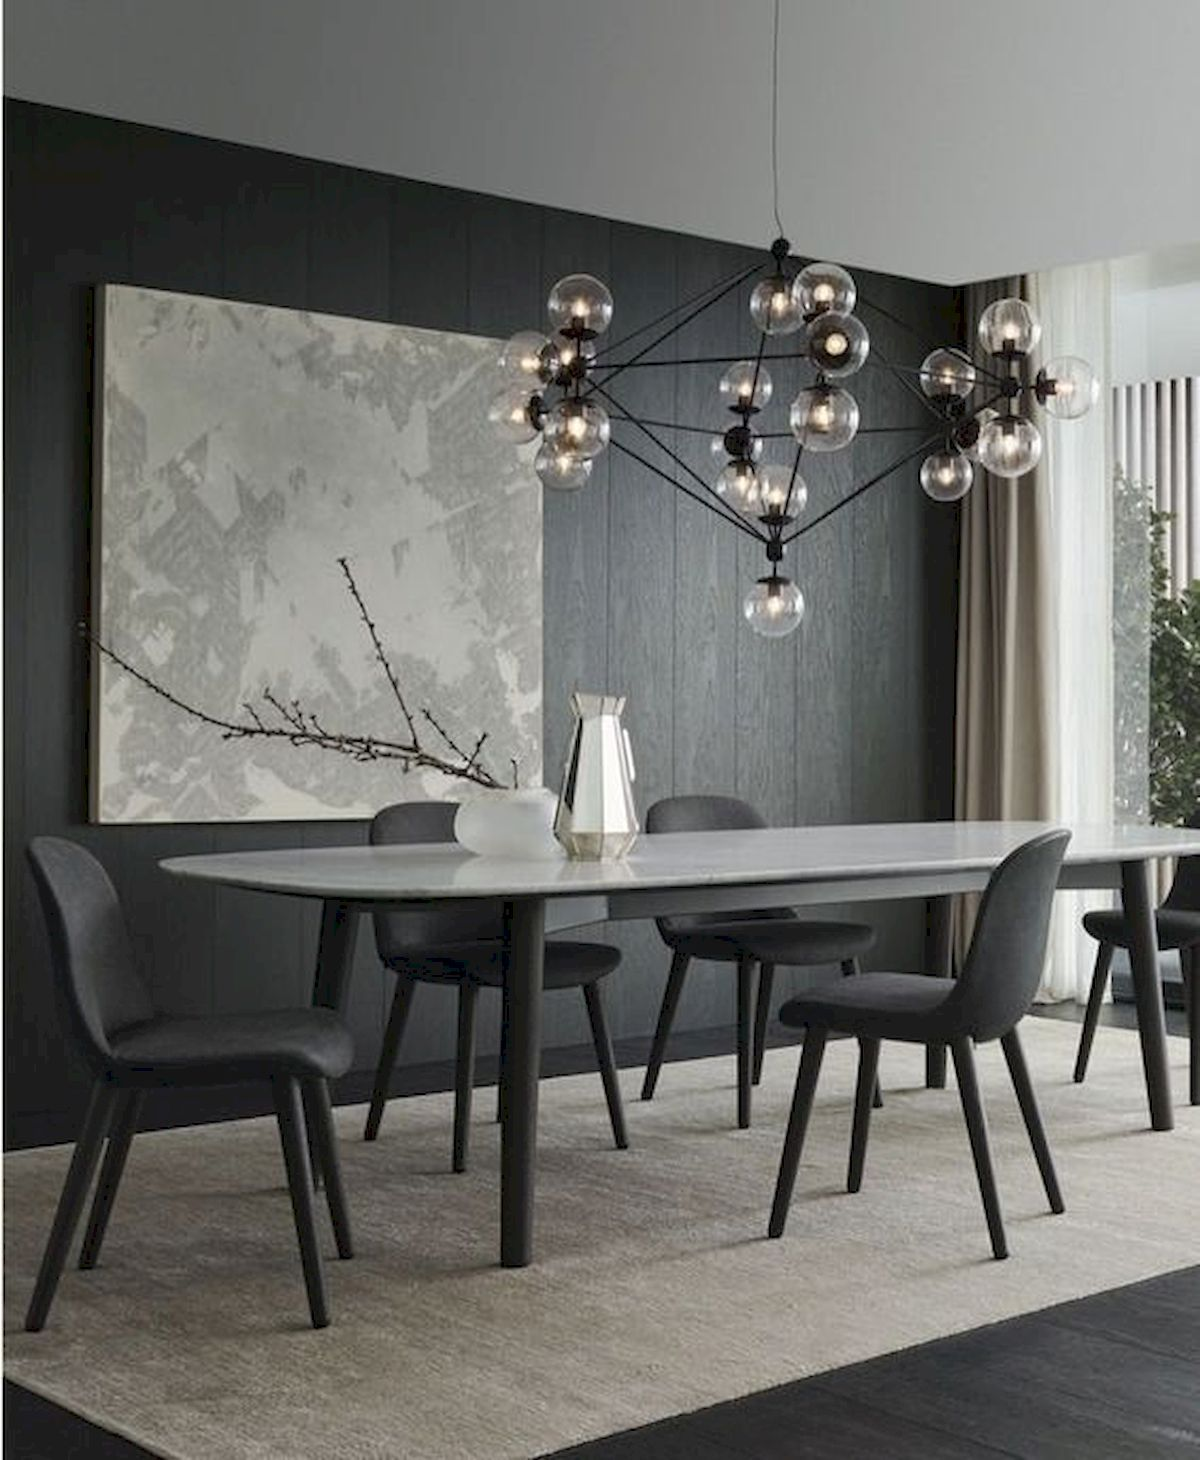 80 Elegant Modern Dining Room Design And Decor Ideas With Images